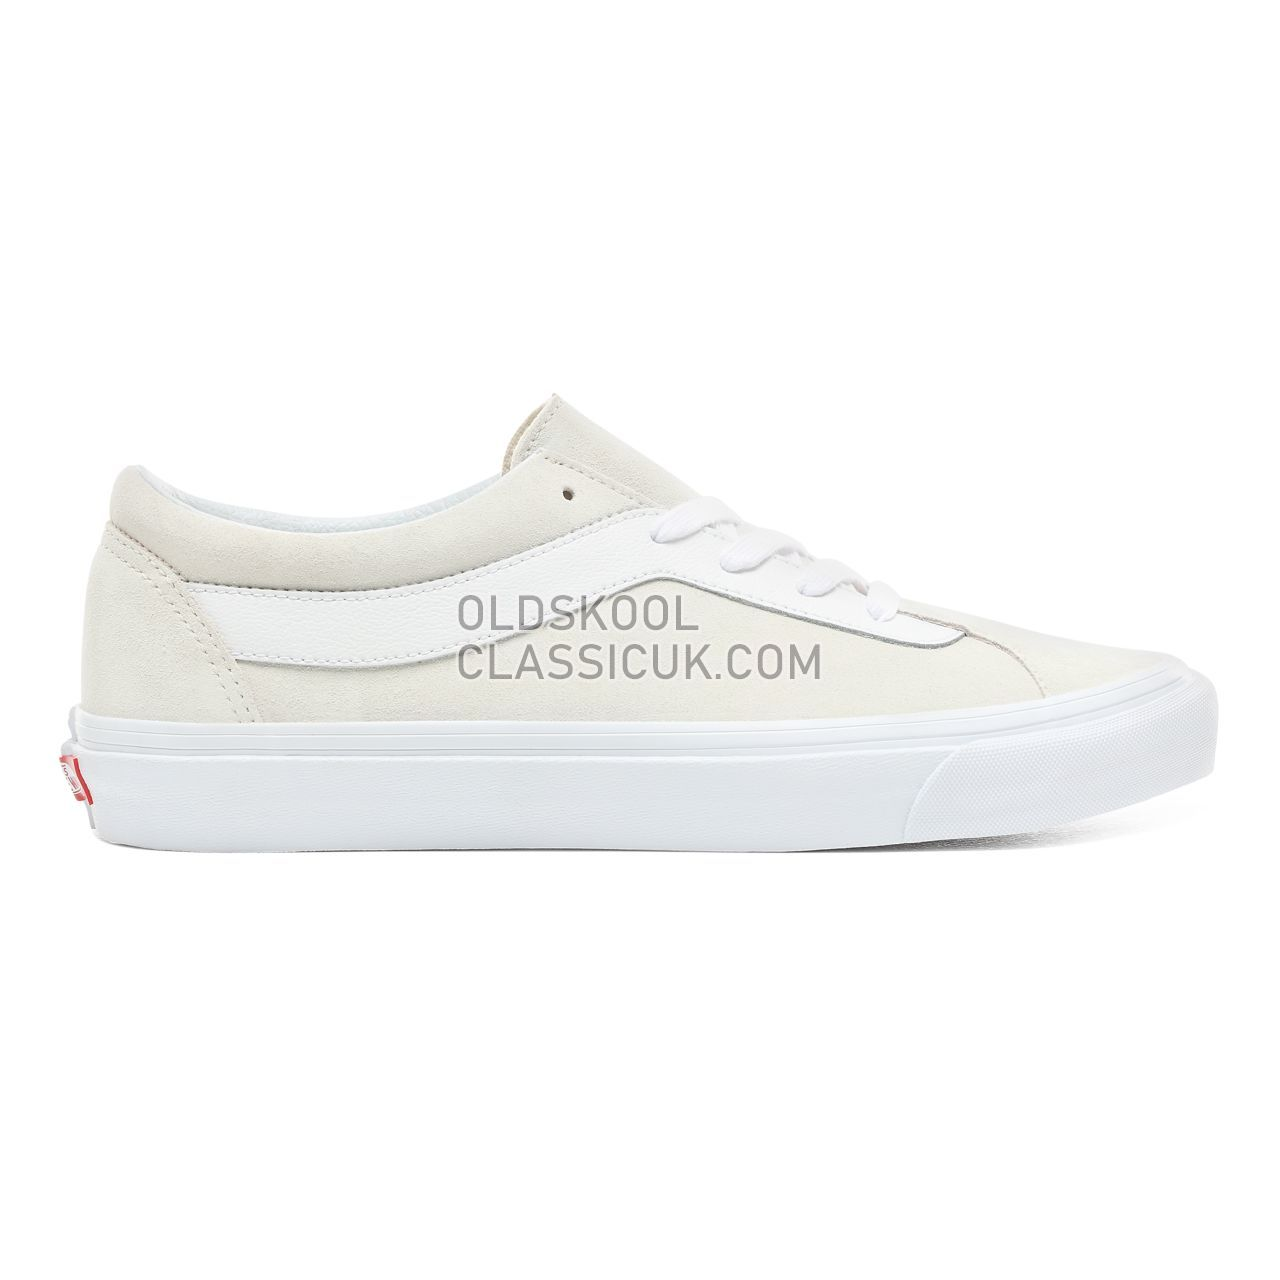 Vans Suede Bold NI Sneakers Mens (Suede) Marshmallow/True White VN0A3WLPVLK Shoes